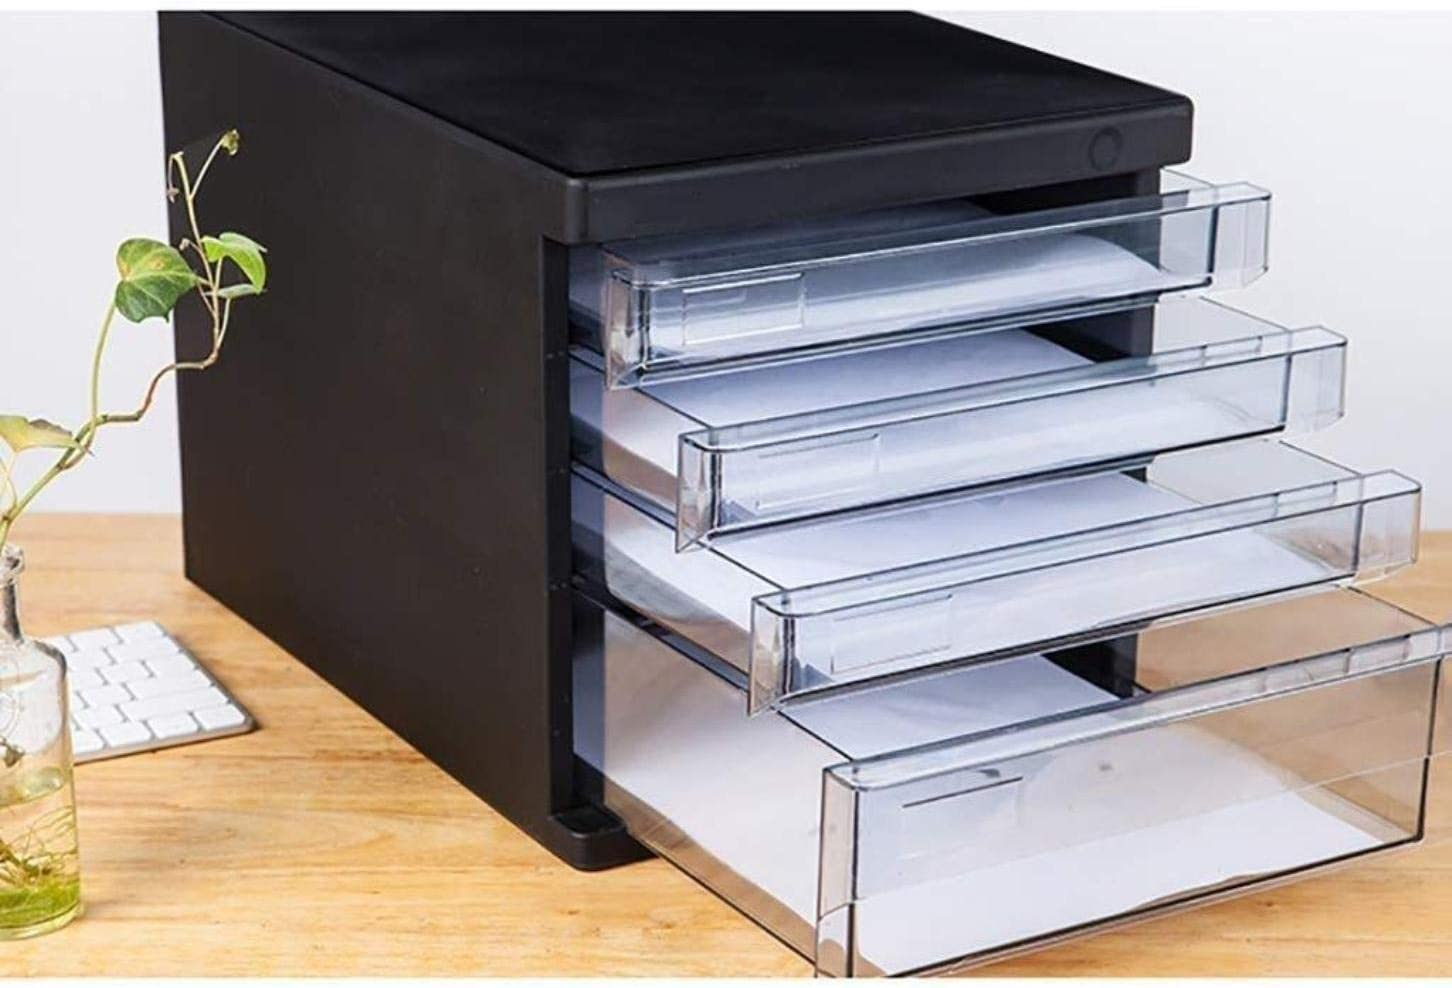 26.5X36X25.5CM File Cabinet Color : A1, Size : with Lock File Cabinets File Cabinets Portable Tidy Storage Box-abs Material Landslide Track Drawer Small White Label Ring Cabinet Pp Plastic